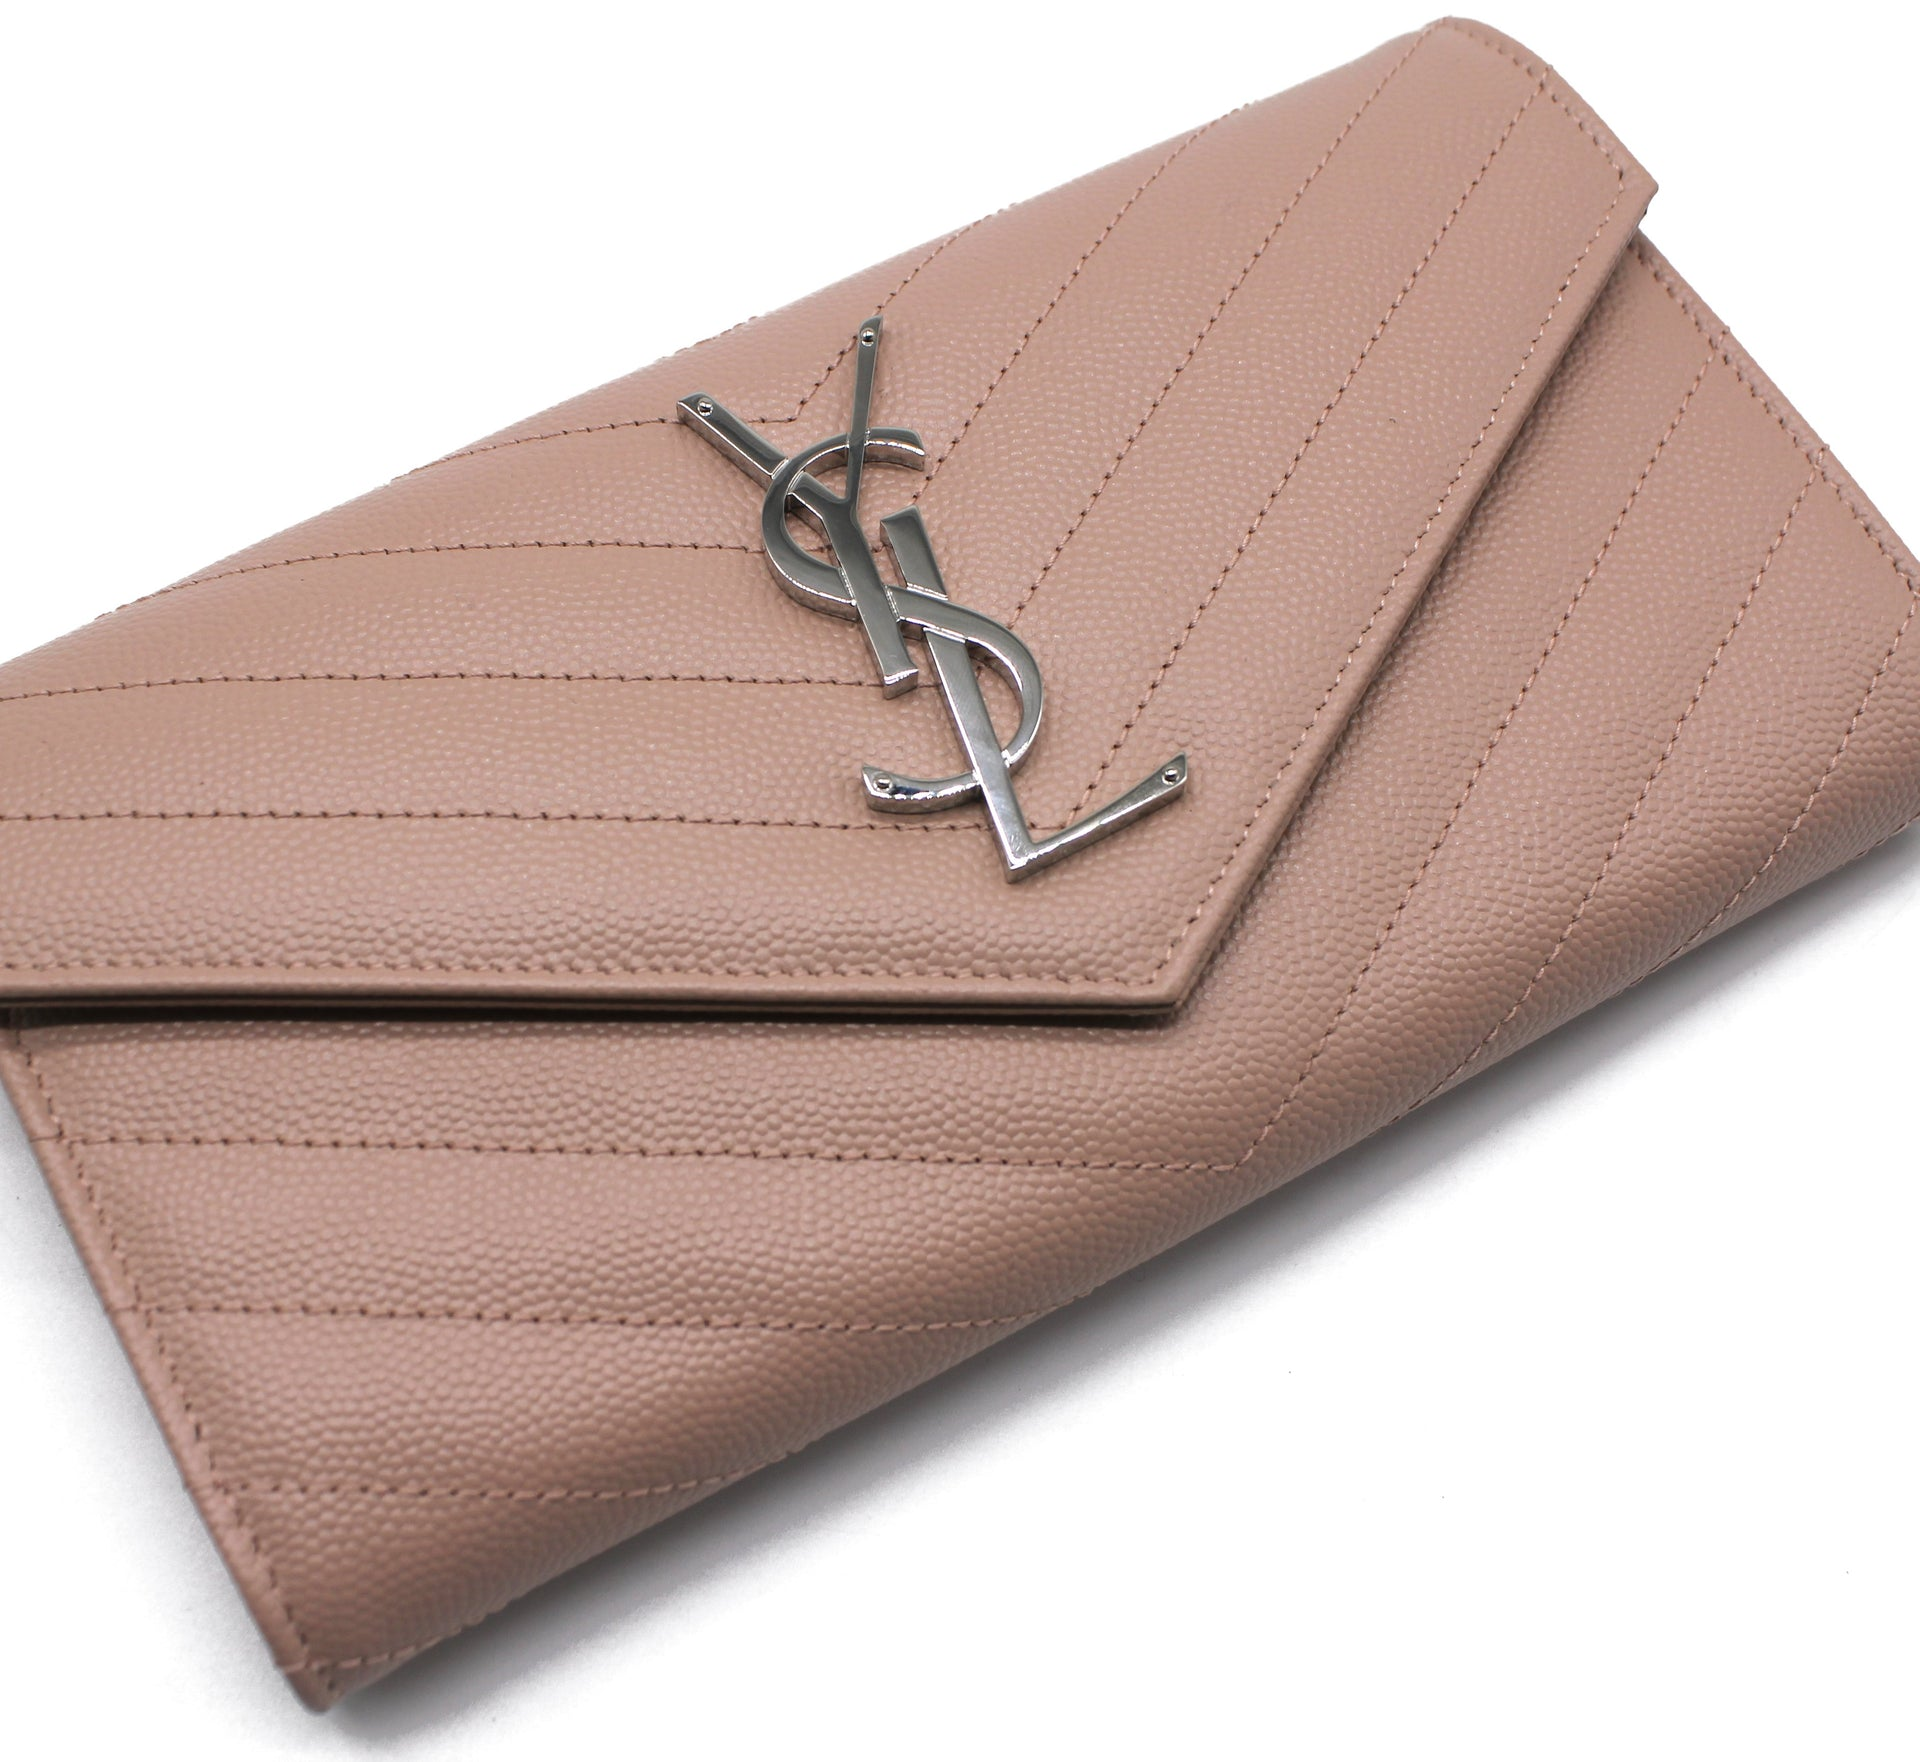 Saint Laurent Monogram Envelope Wallet